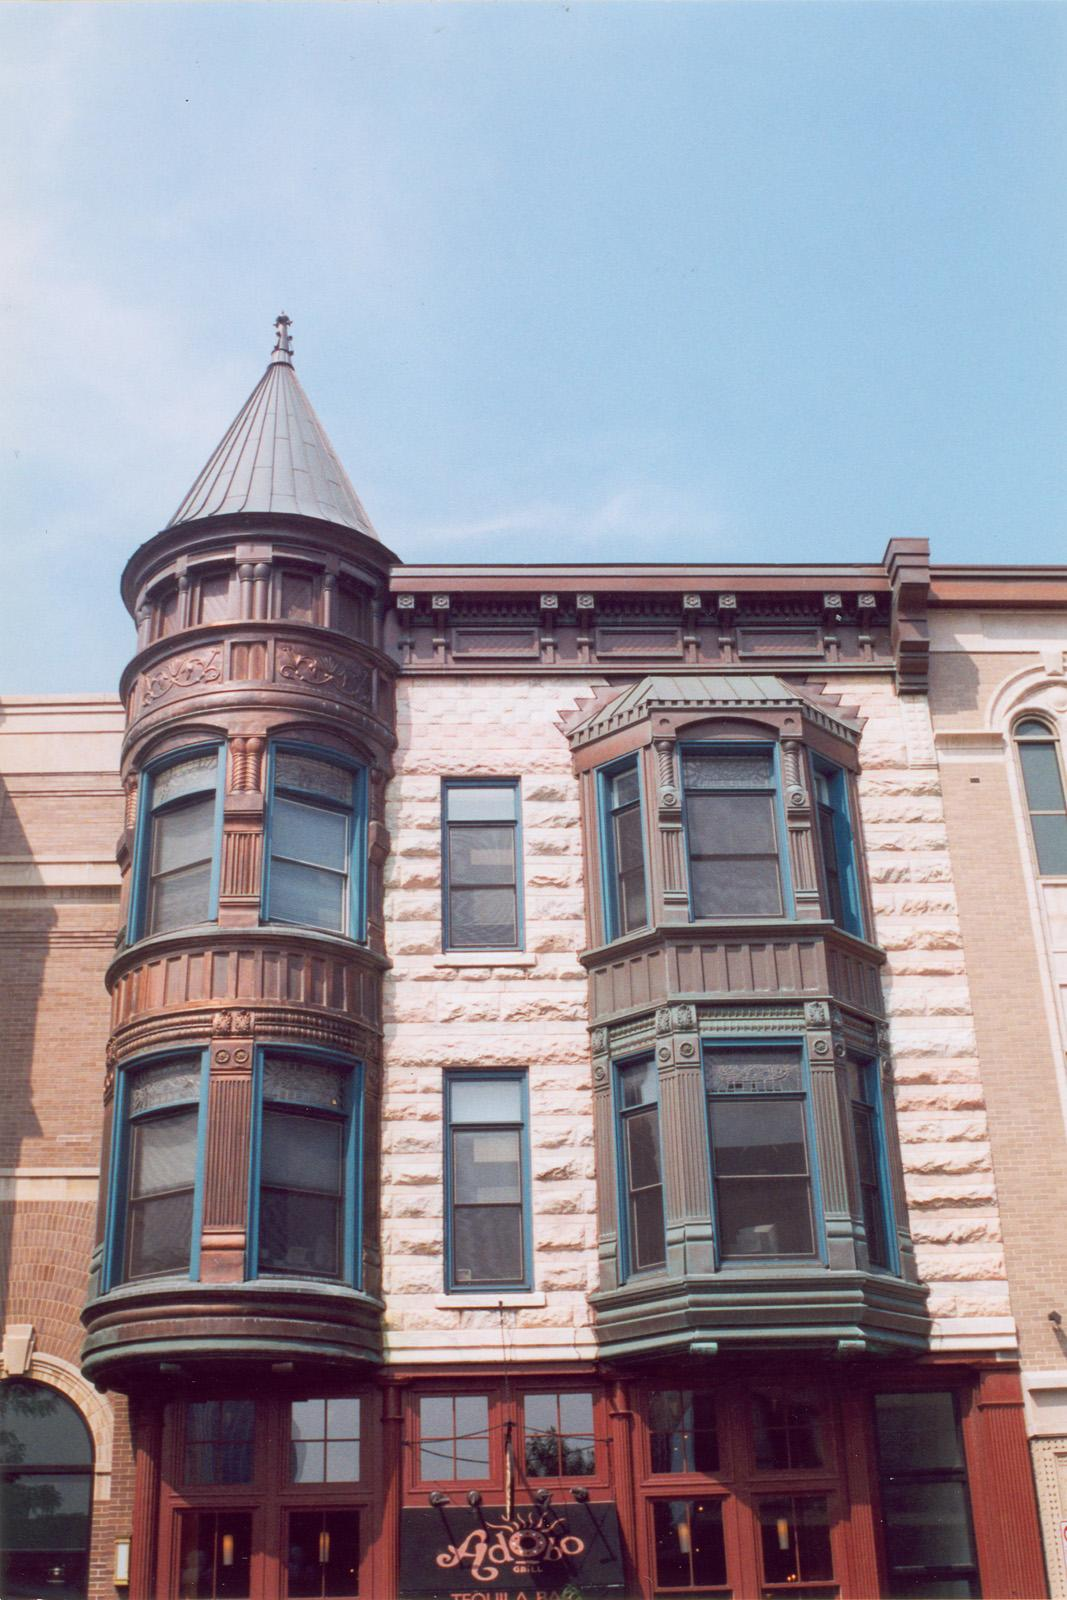 1610 N. Wells St.; Apartment; Commercial building